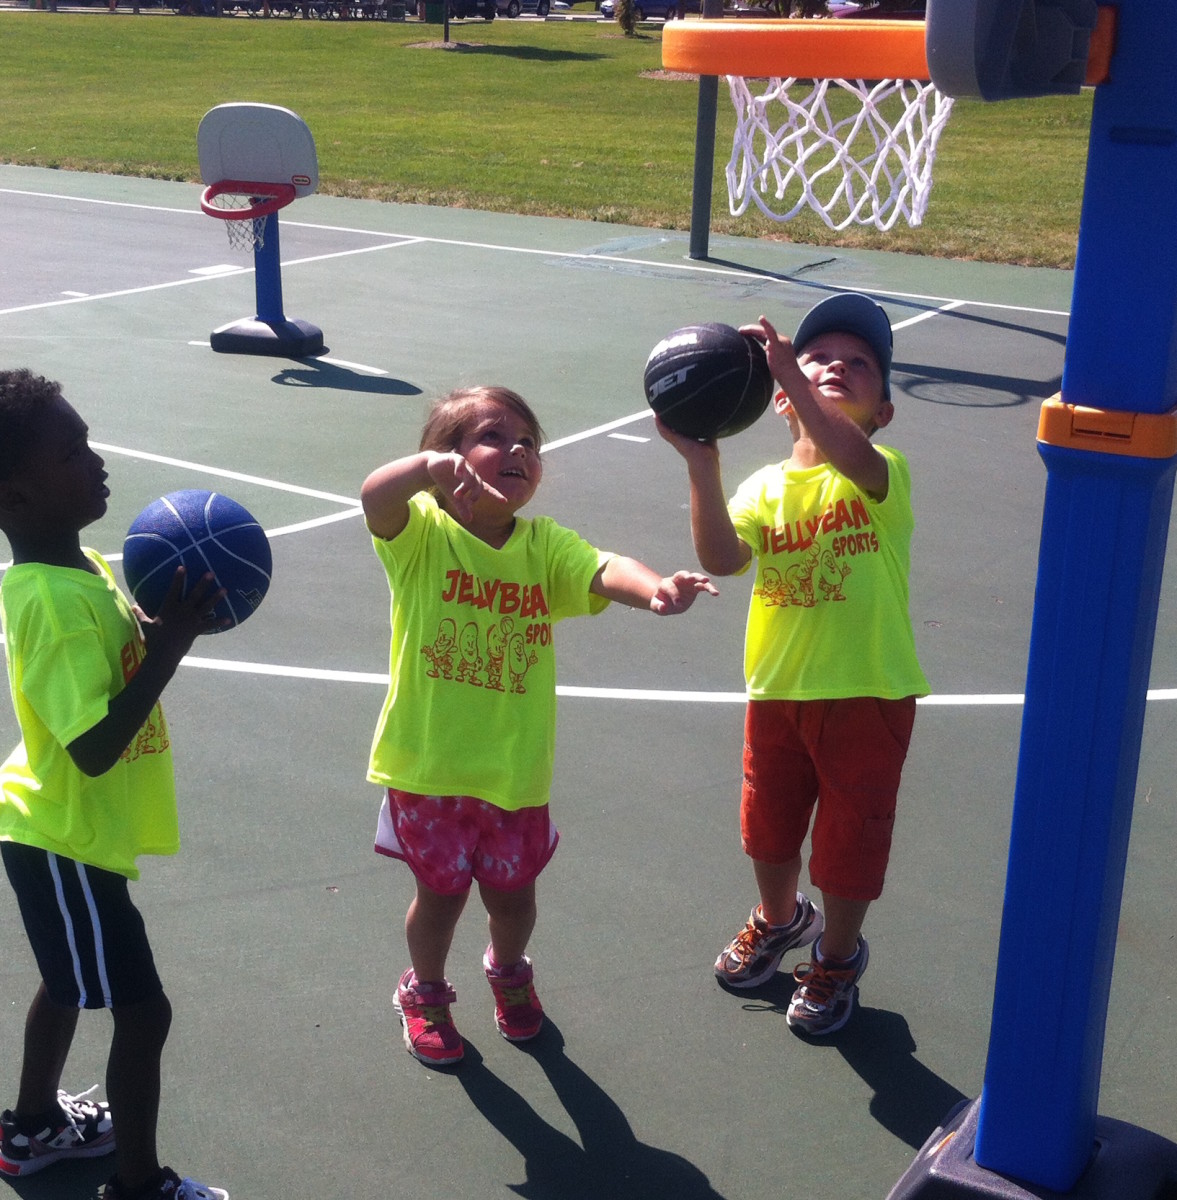 Kids shooting basketballs